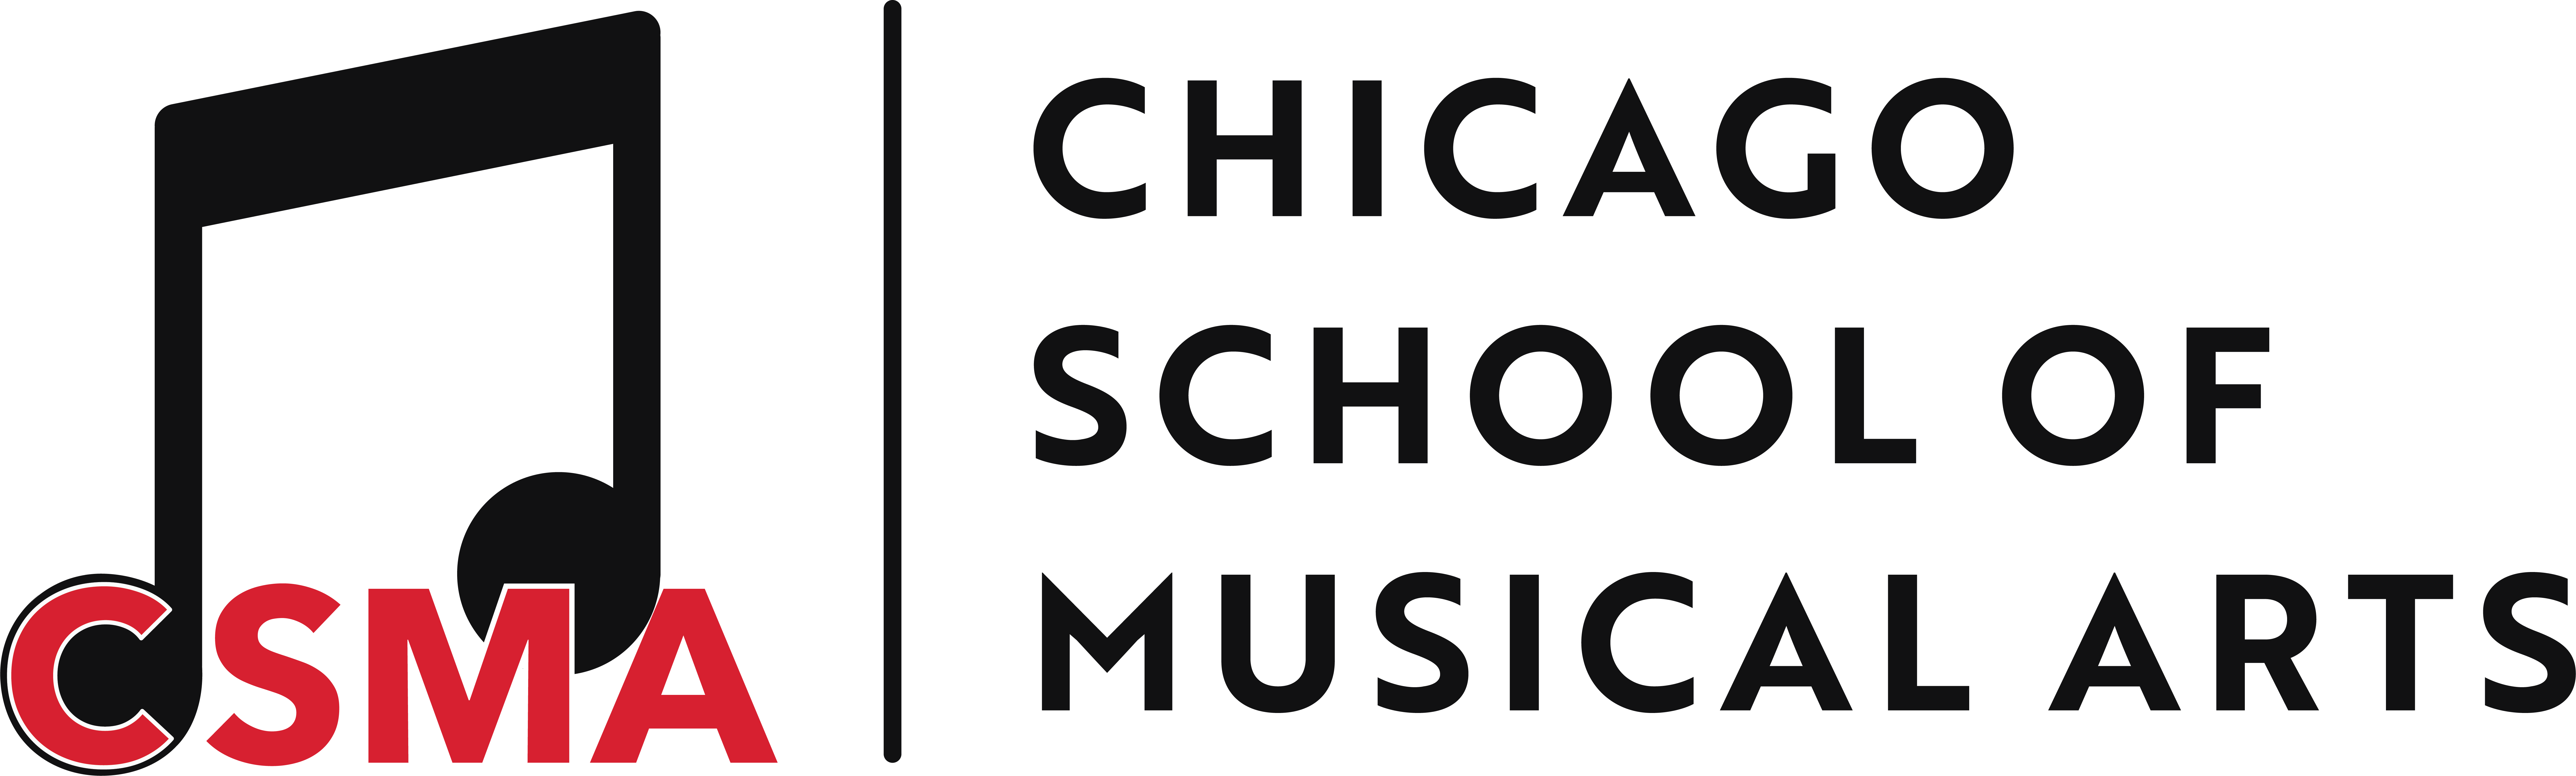 Chicago School of Musical Arts